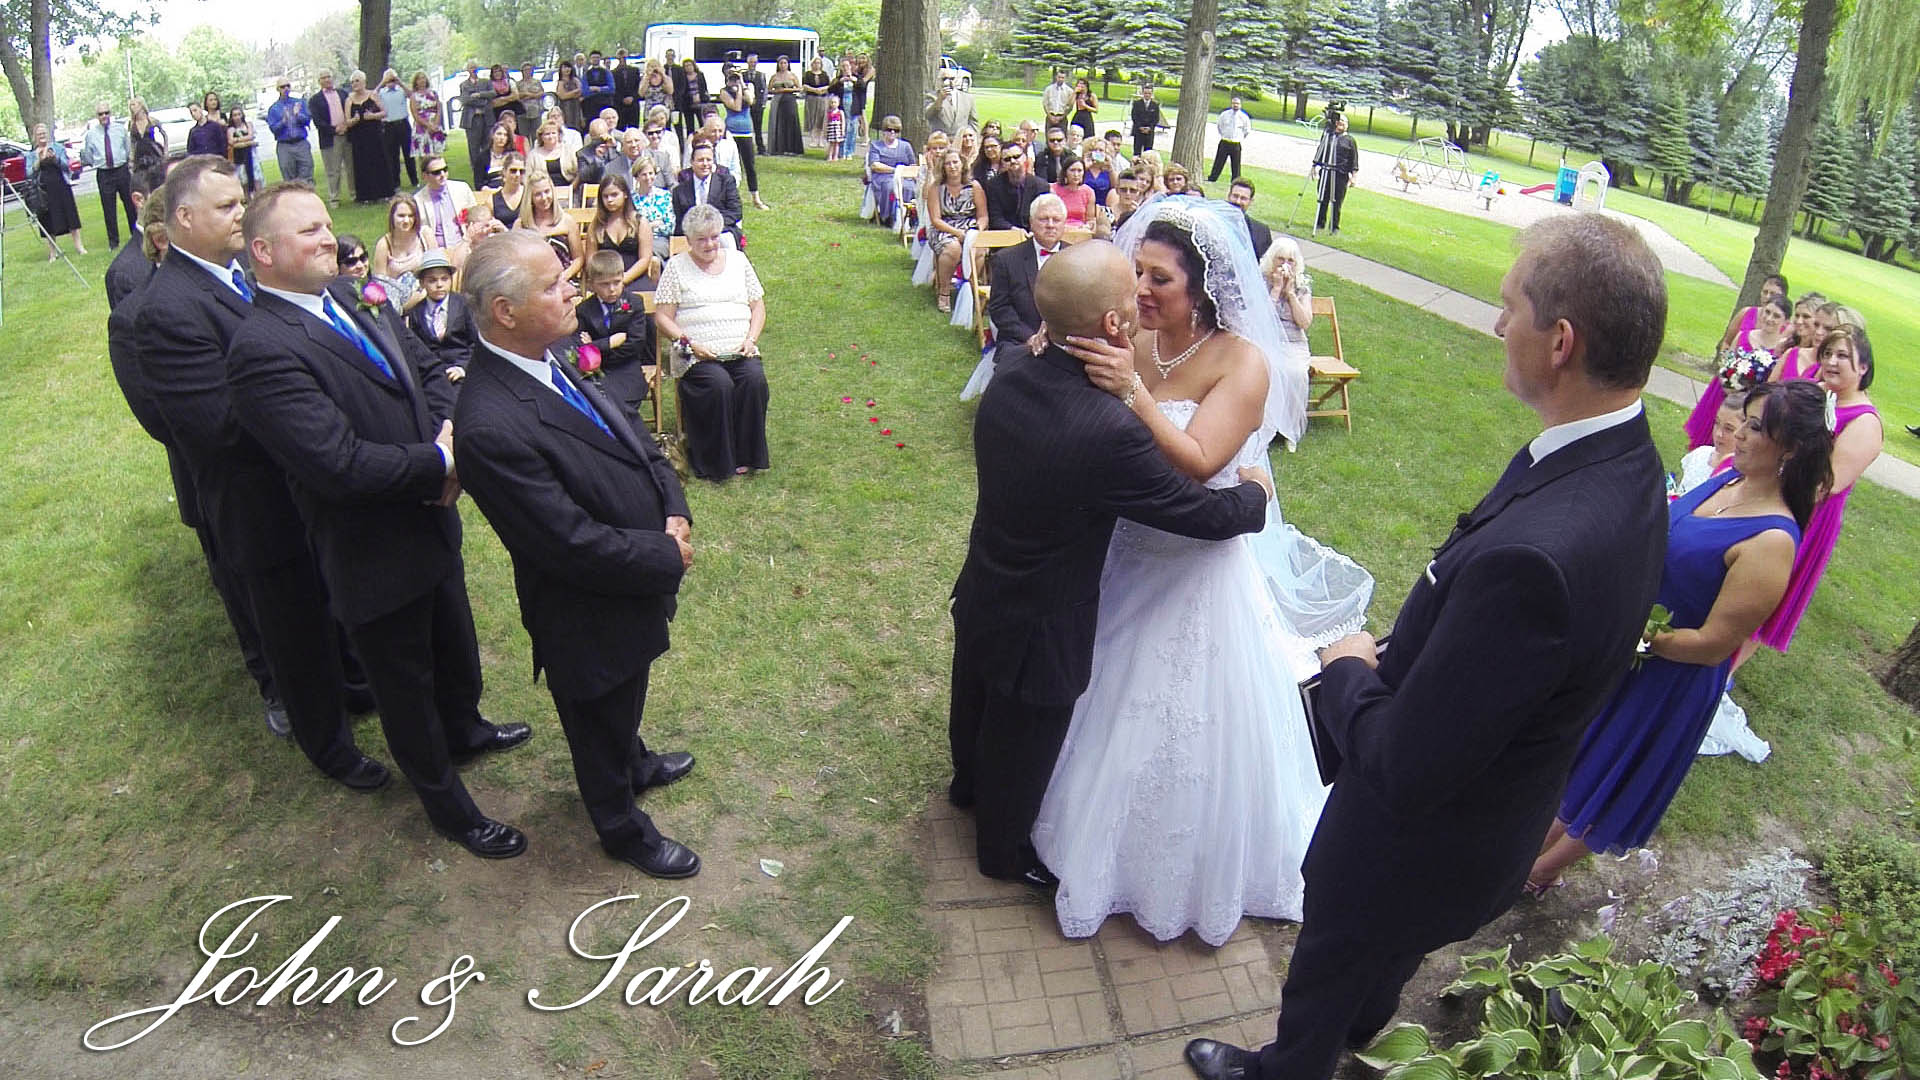 John & Sarah – Buffalo Wedding Videographer